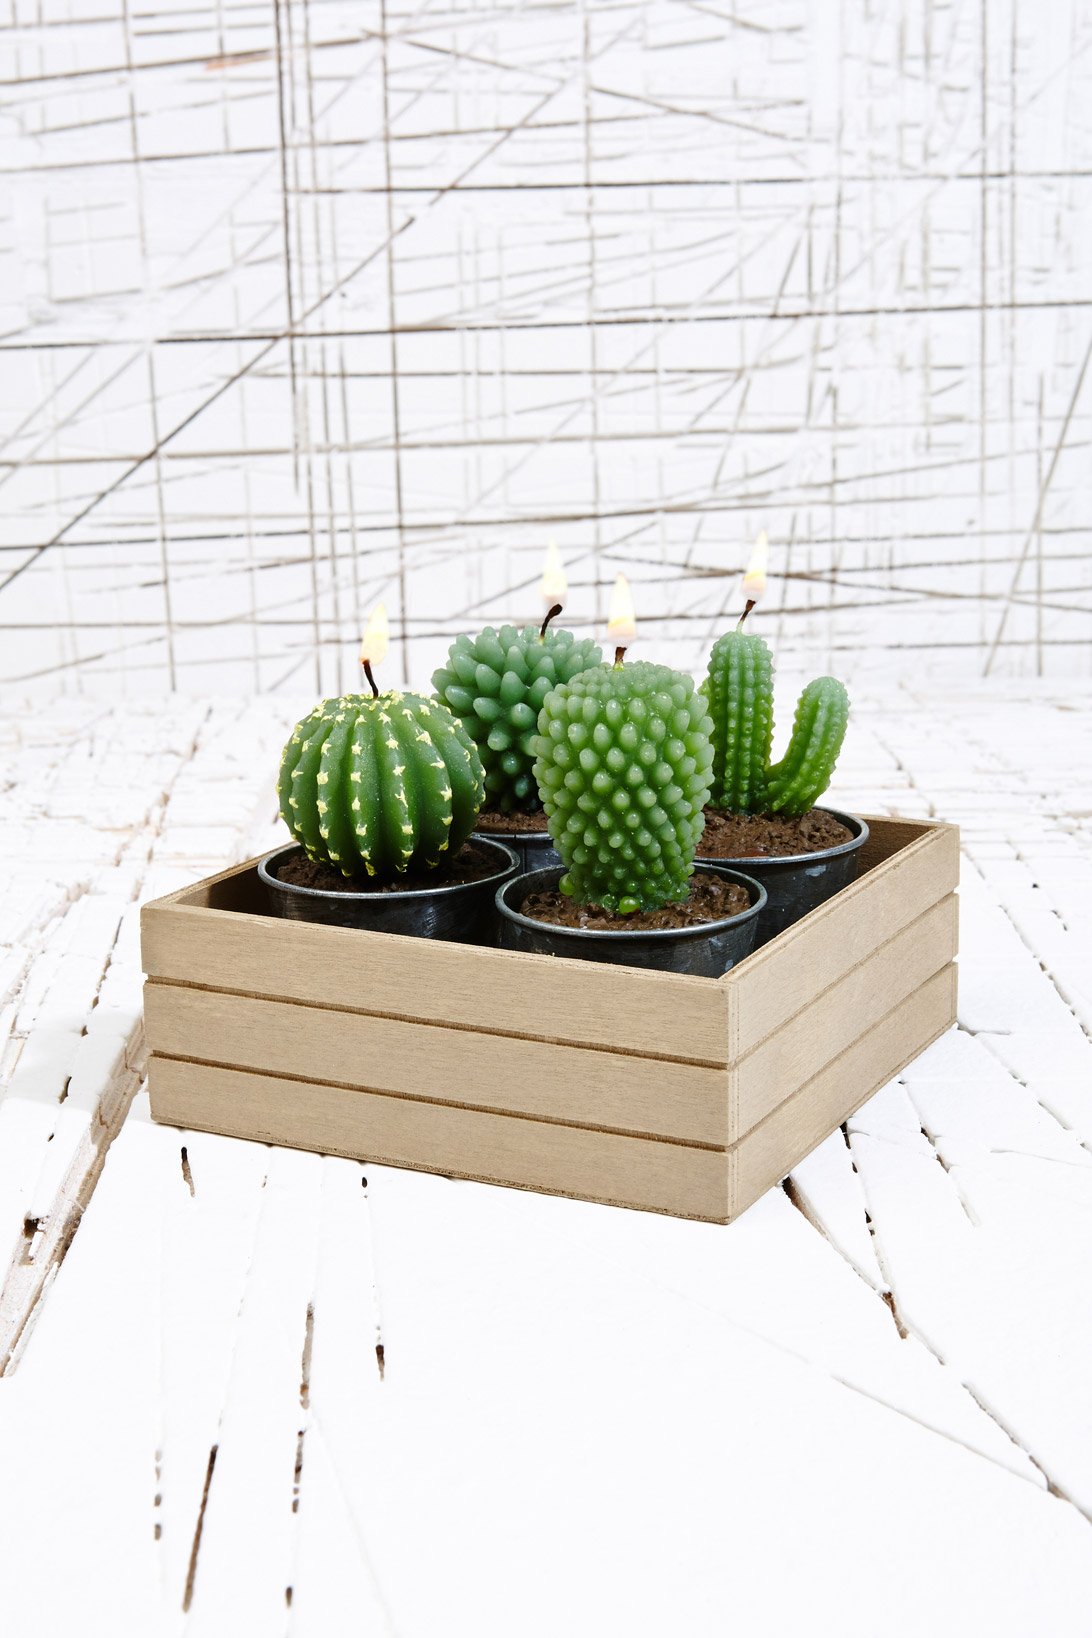 Cacti Candle Set, £5, Urban Outfitters